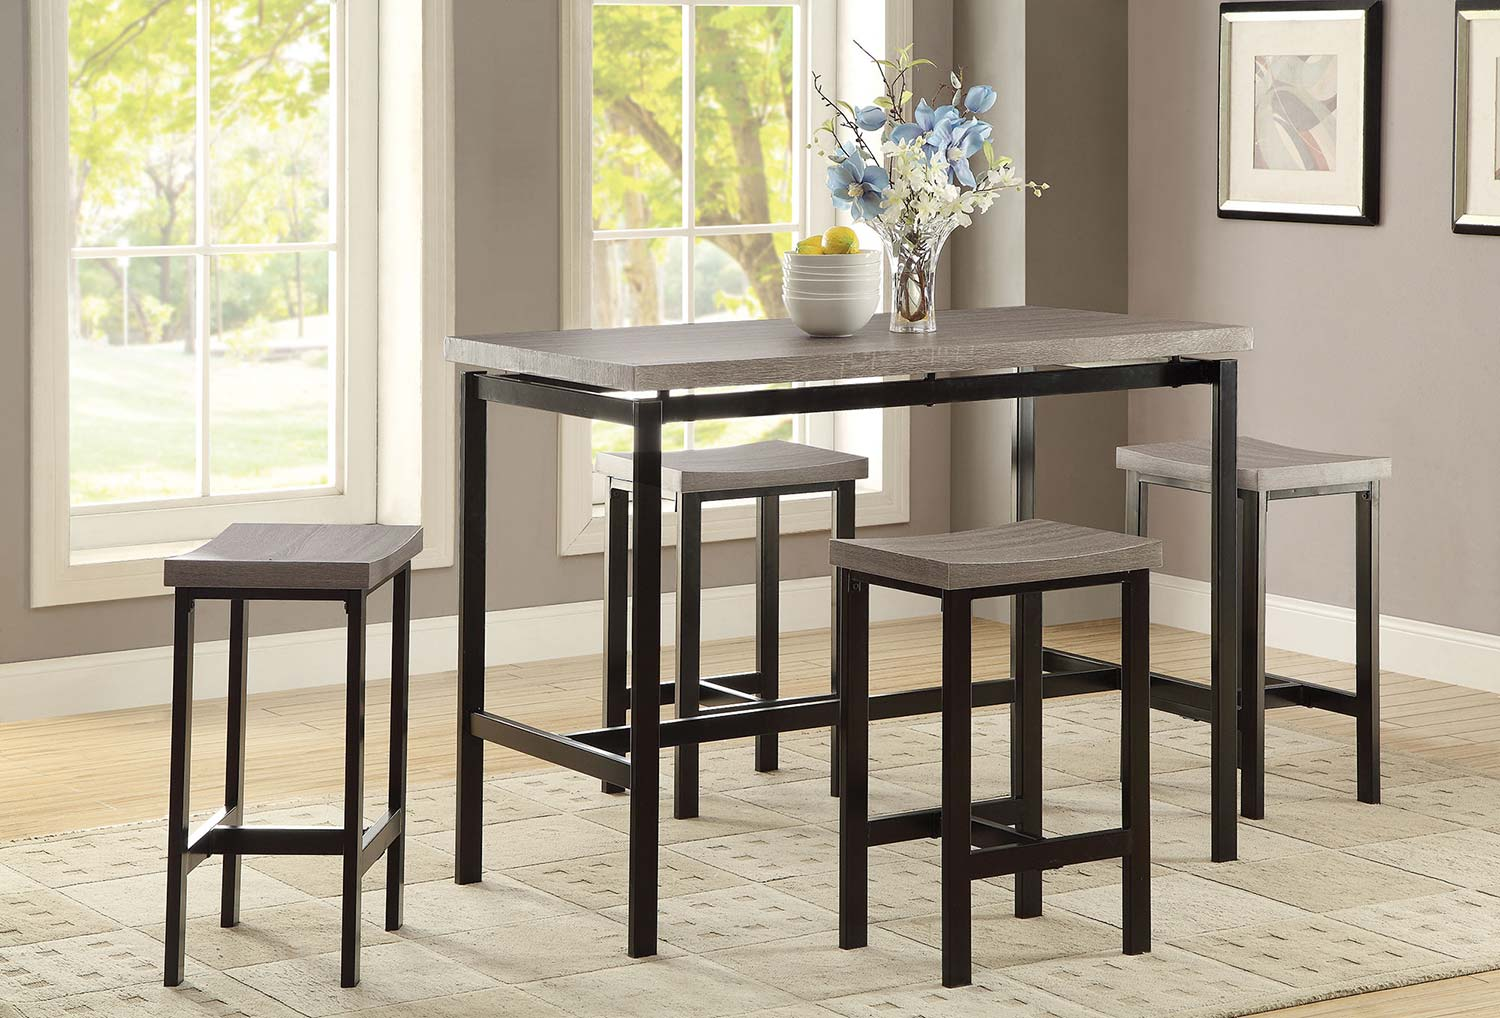 Coaster 150024 5 PC Counter Height Dining Set - Gunmetal